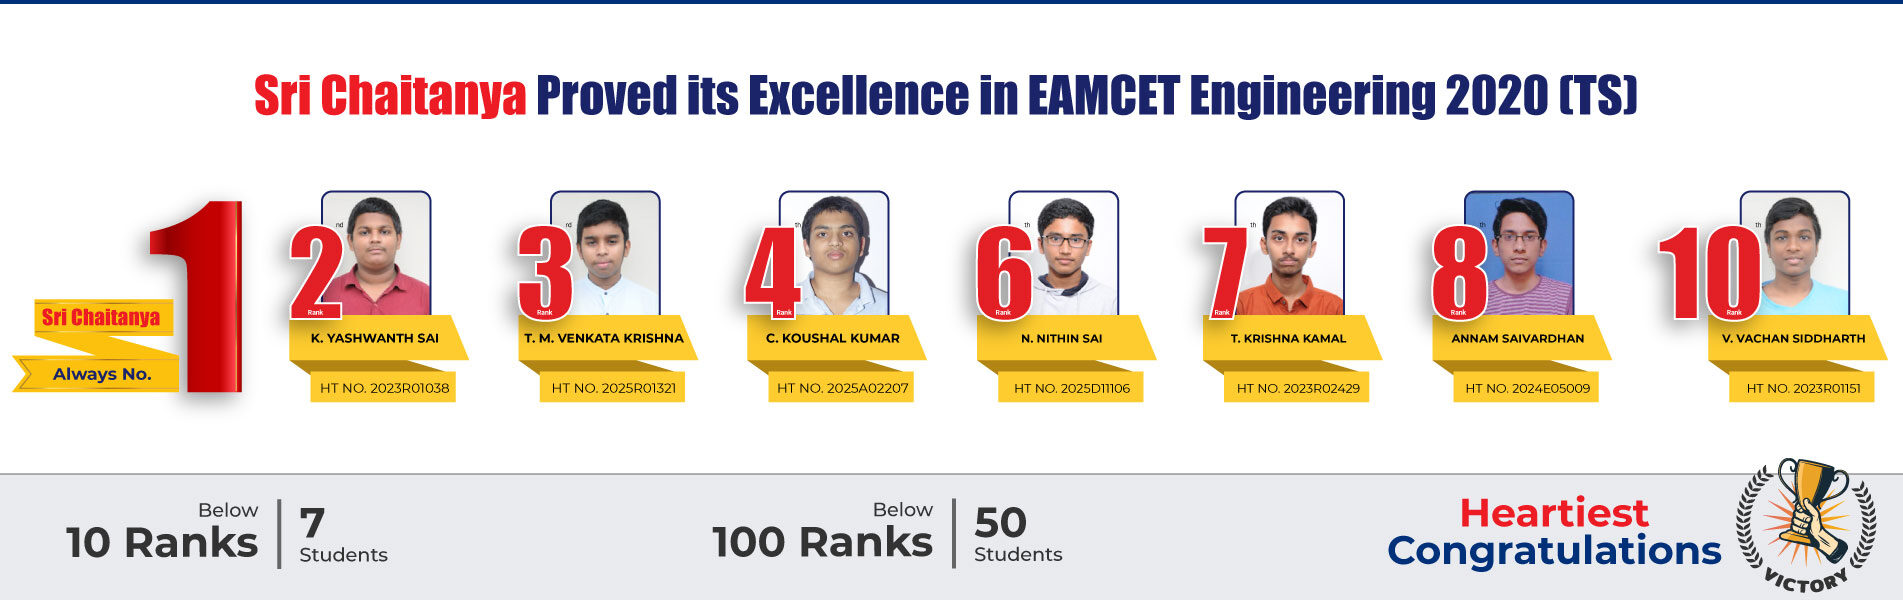 EAMCET Engineering 2020 Results